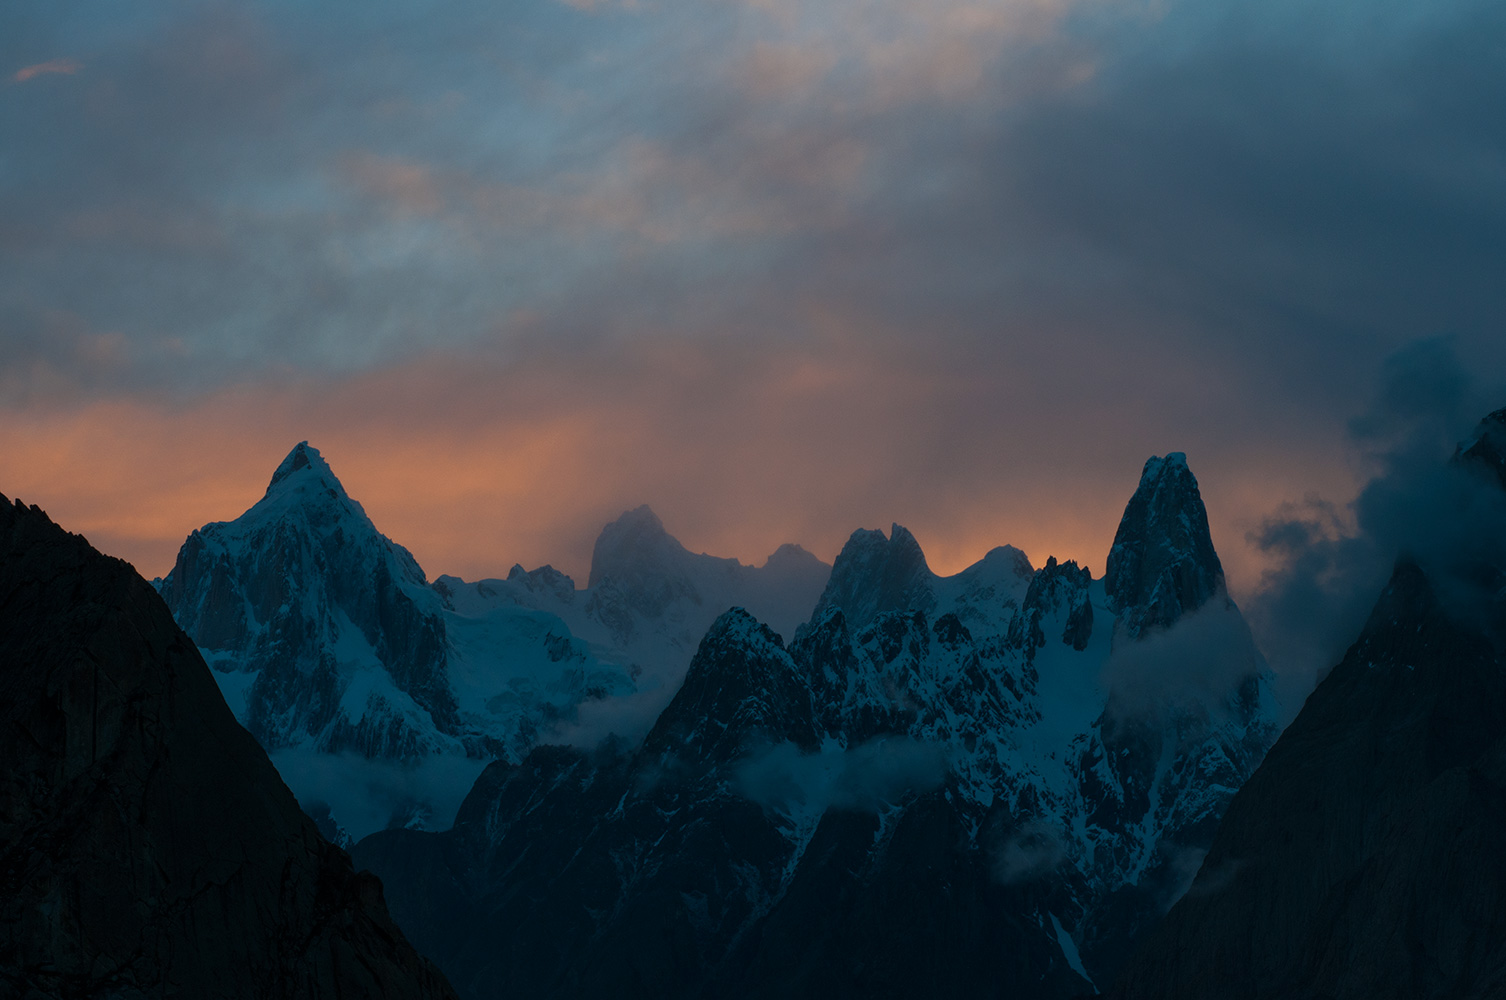 Paiju Peak, Uli Biaho etc emerge from breaking cloud at dusk, seen from Khoburtse (Hobutse) camp on the Baltoro glacier. A scene straight out of Tolkein!Nikon D300, 60mm